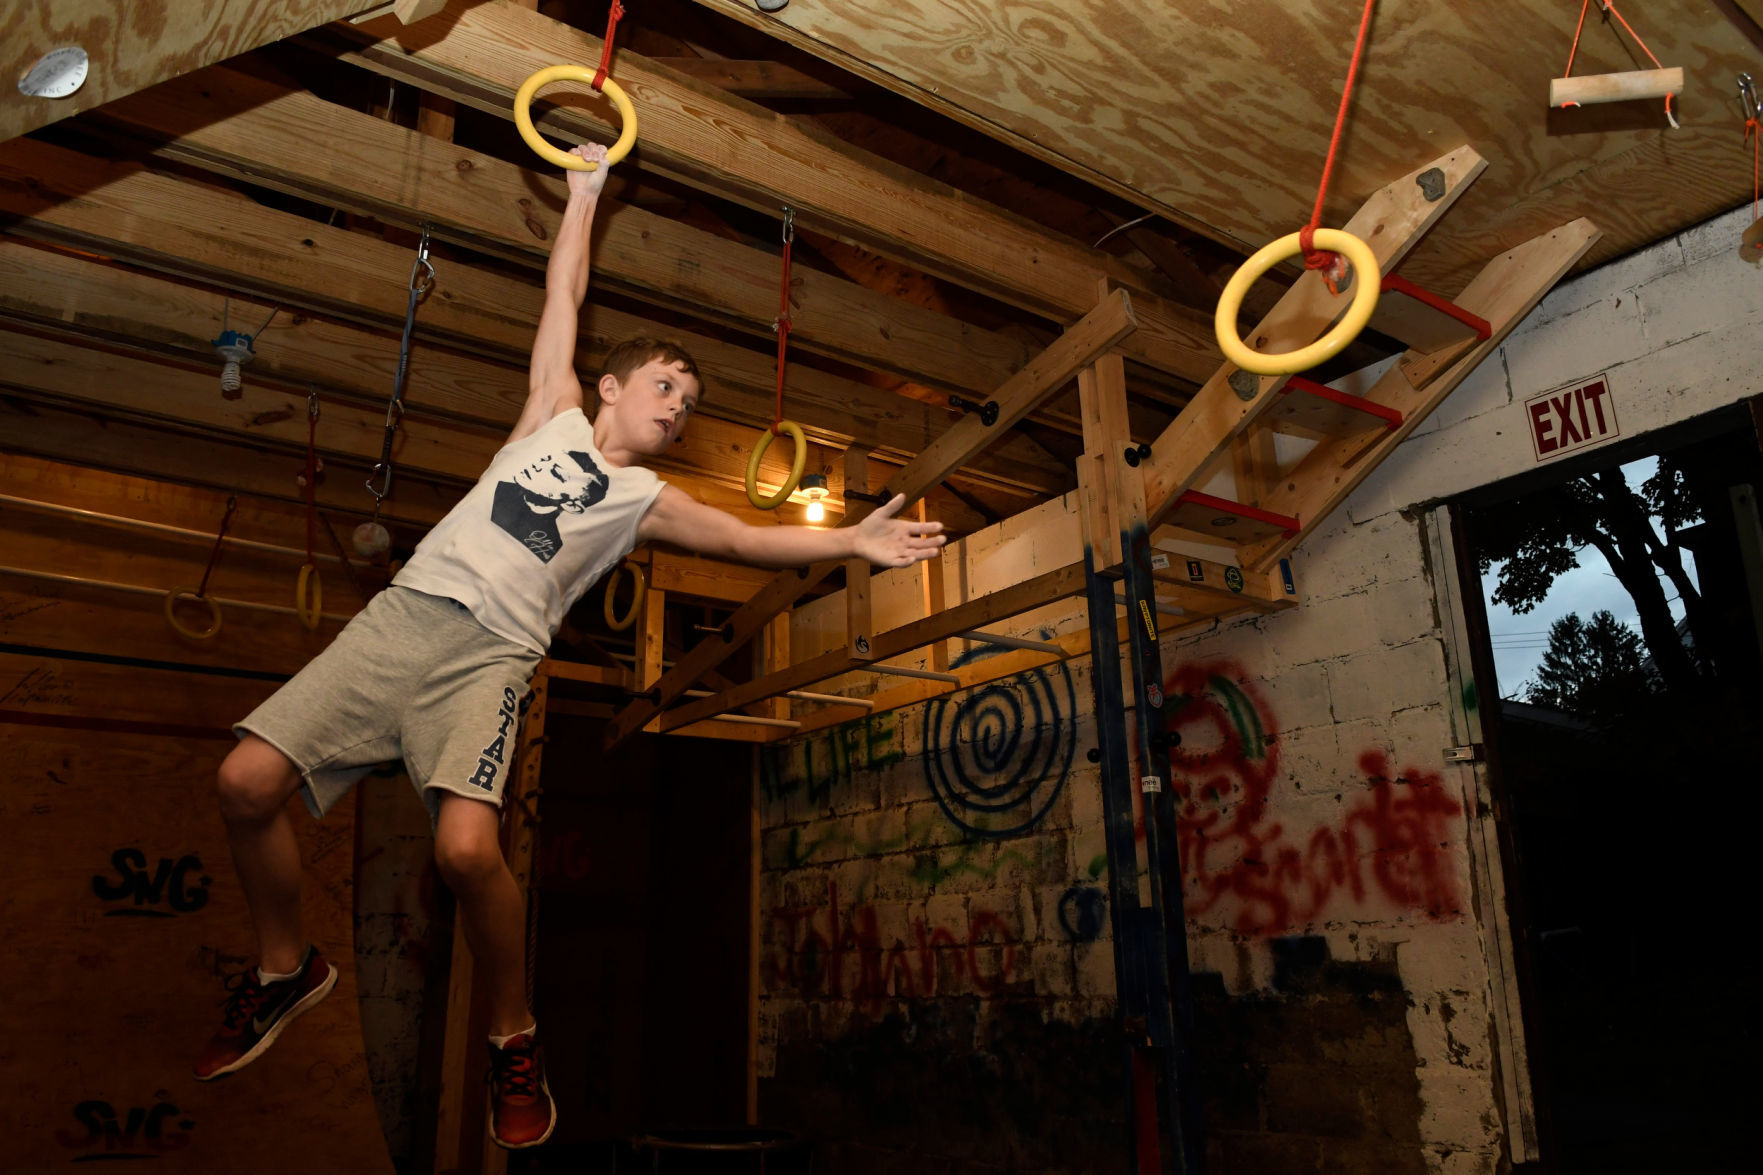 Saratoga springs boy to compete on american ninja warrior